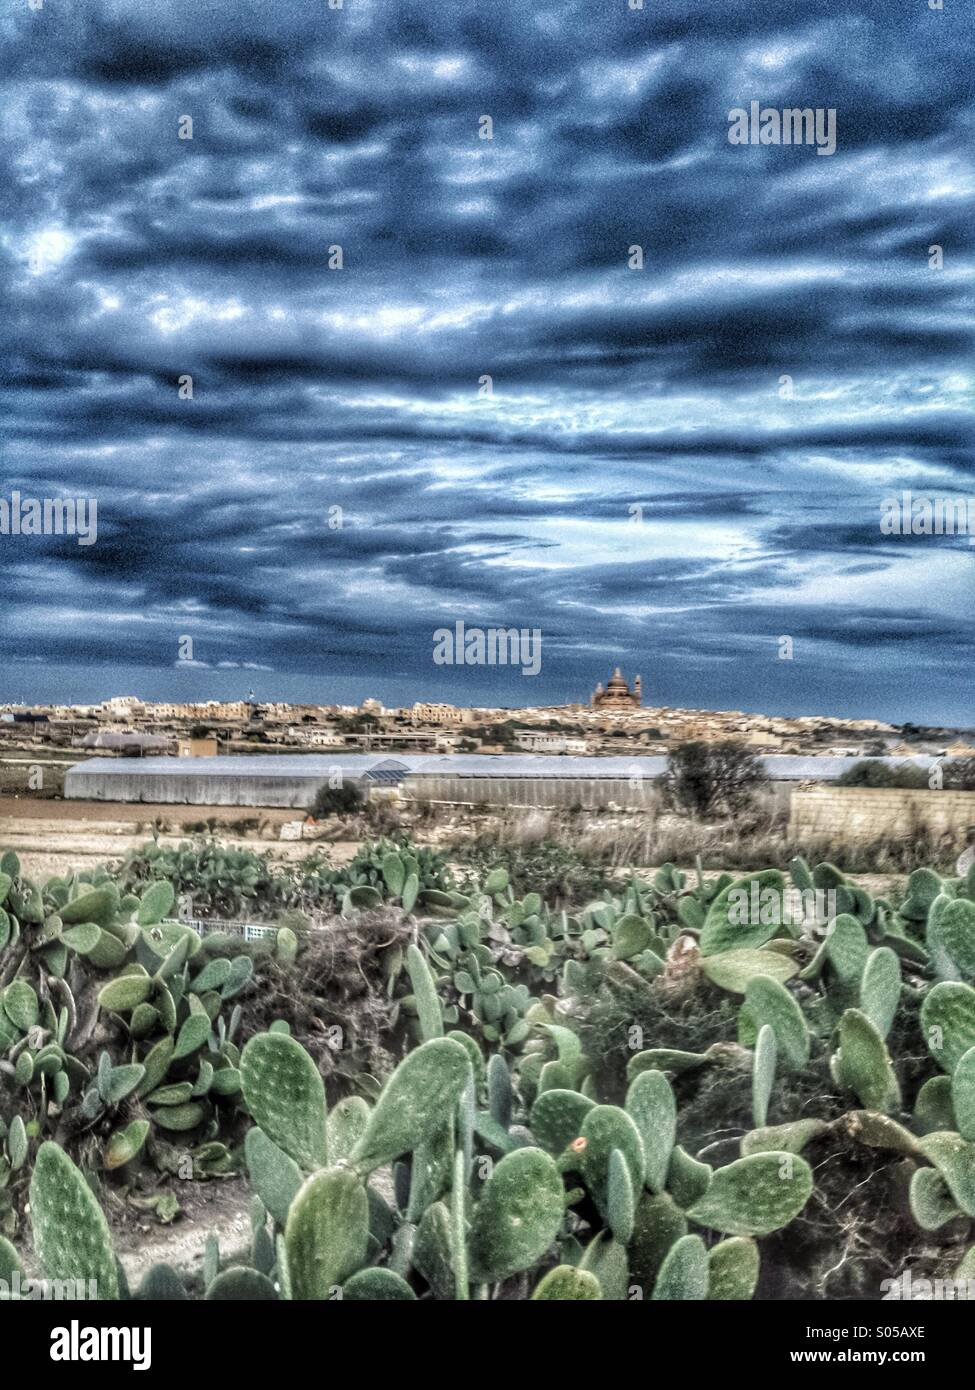 Wall of prickly pear and dramatic sky - Stock Image